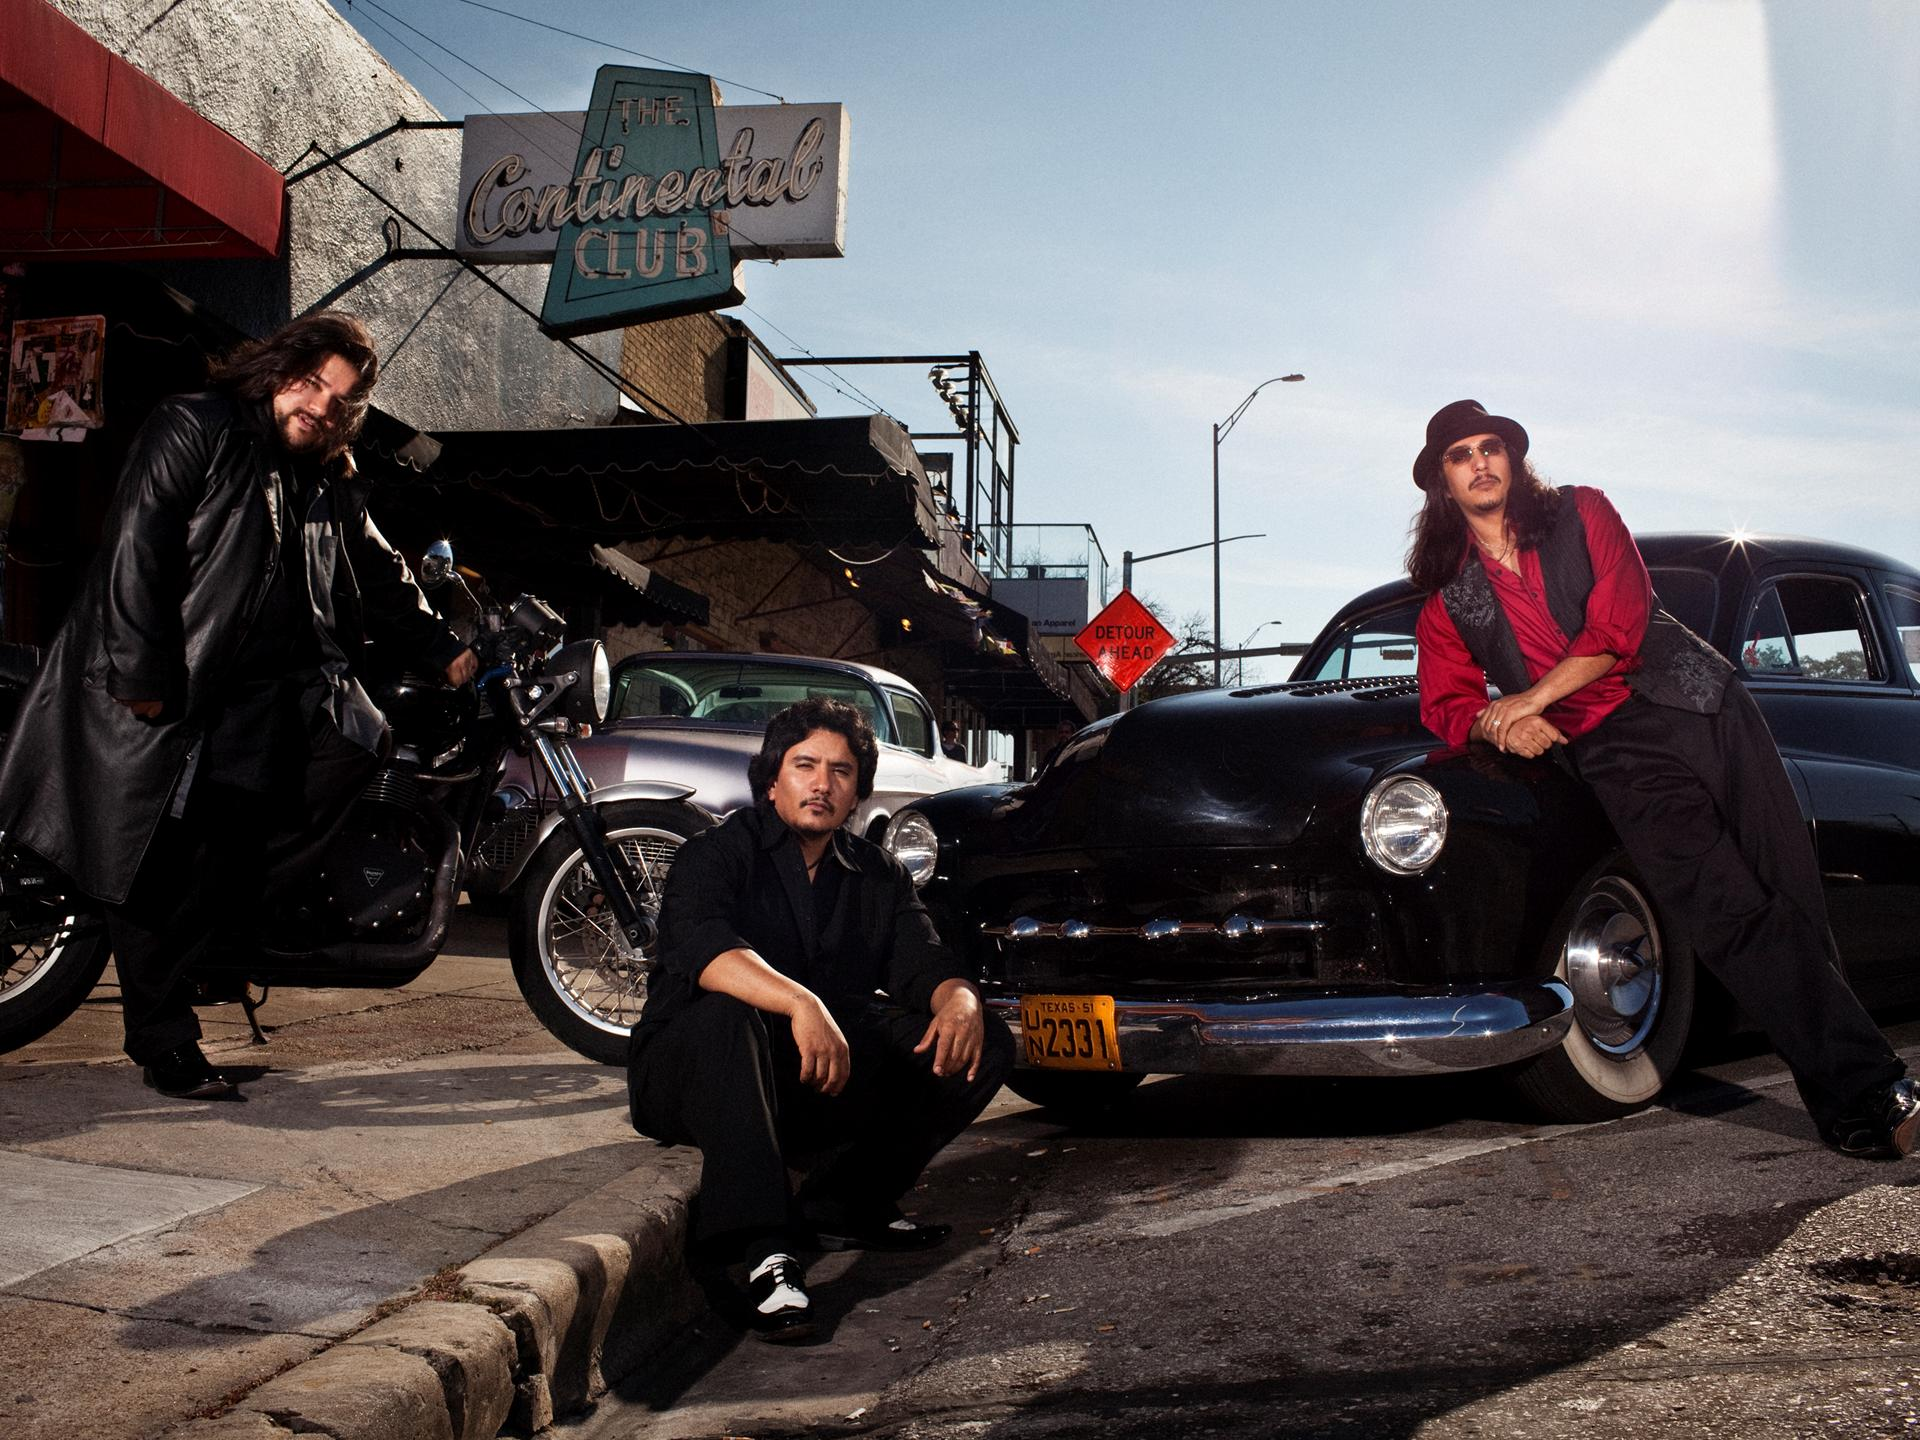 Los Lonely Boys Lyrics - LyricsMode.com - HD Wallpapers